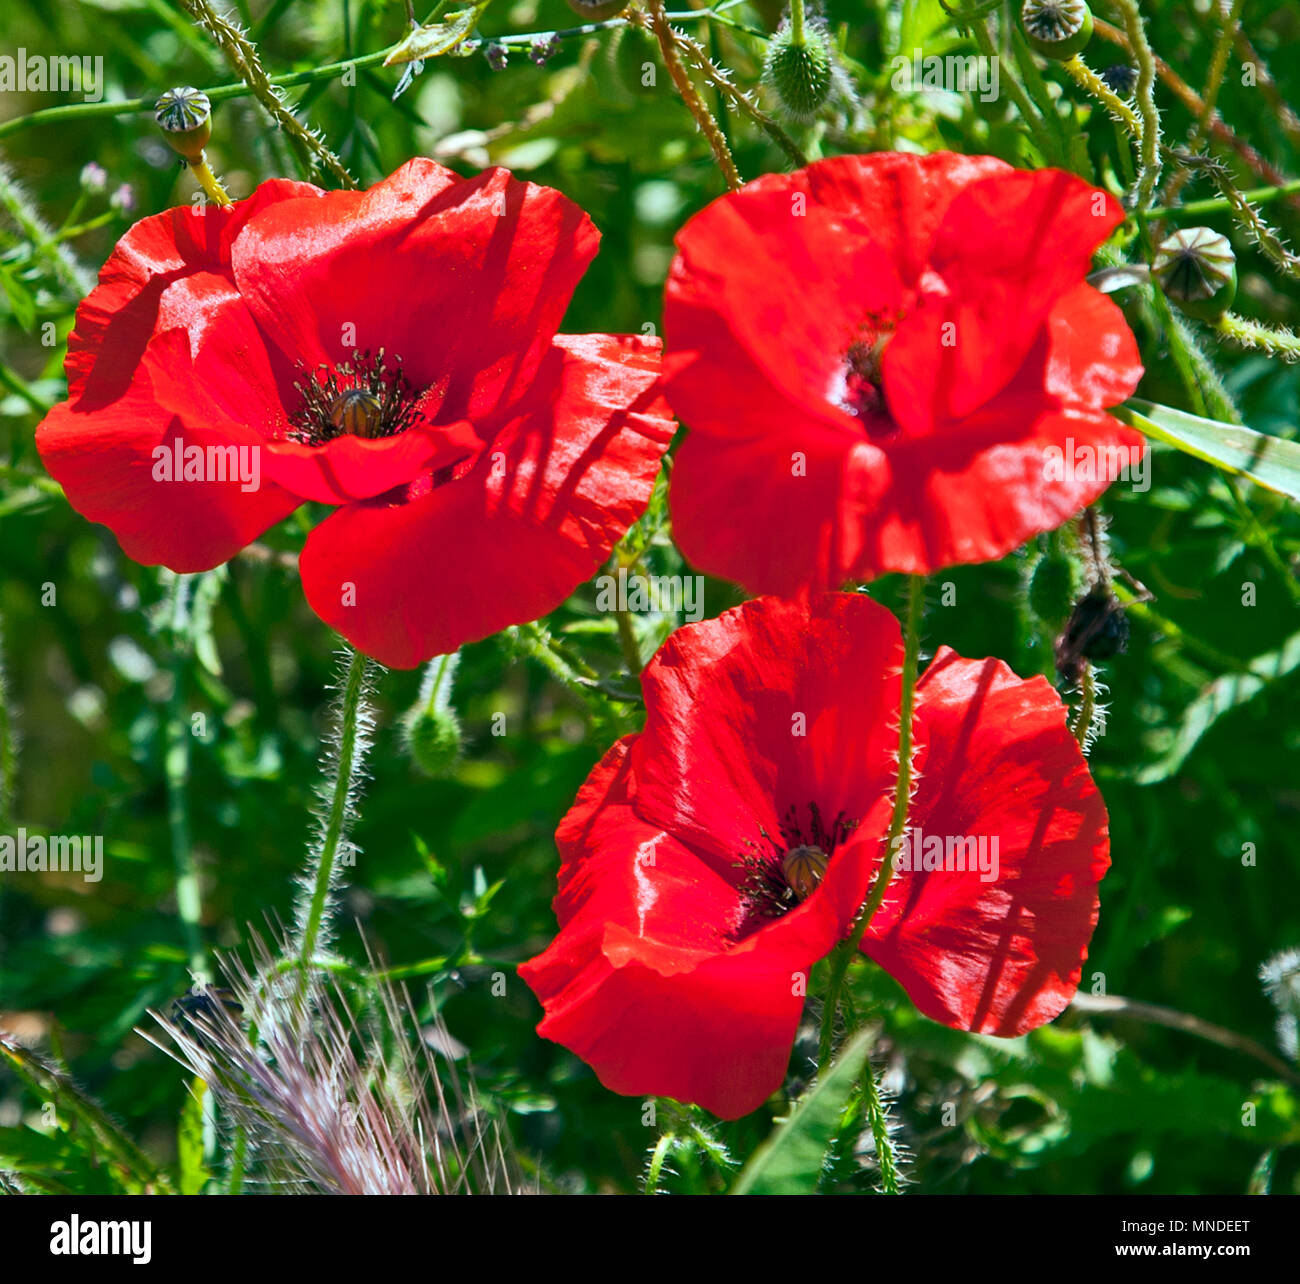 Beautiful Red Poppy Flowers Growing Outside In A Green Area Stock